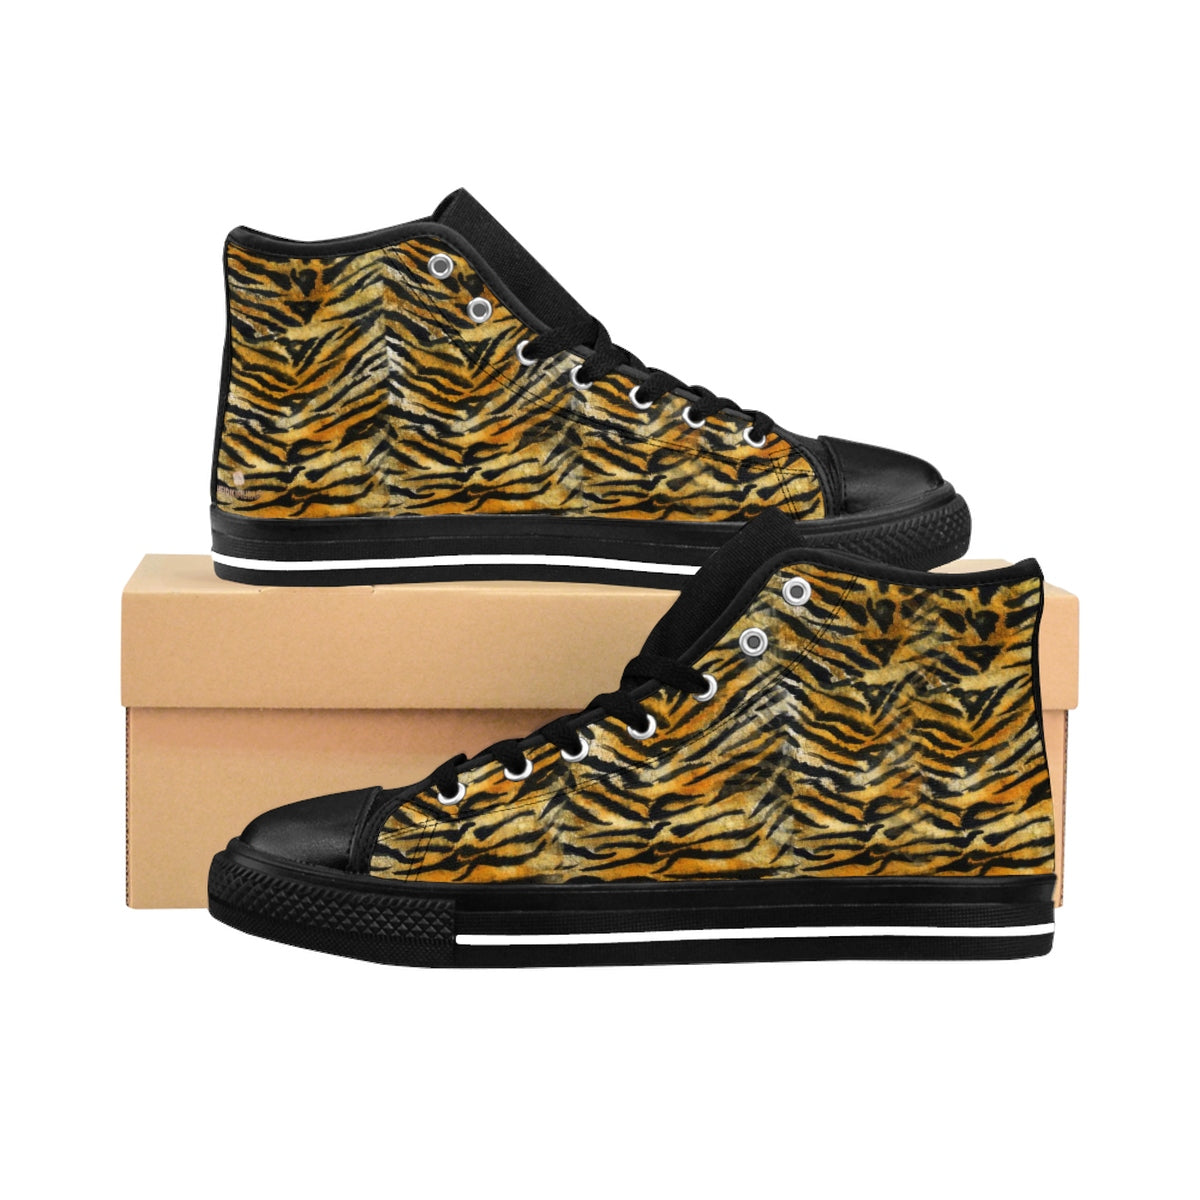 Tiger Striped Women's High Tops Sneakers, Striped Animal Print Running Shoes For Her-Women's High Top Sneakers-US 9-Heidi Kimura Art LLC